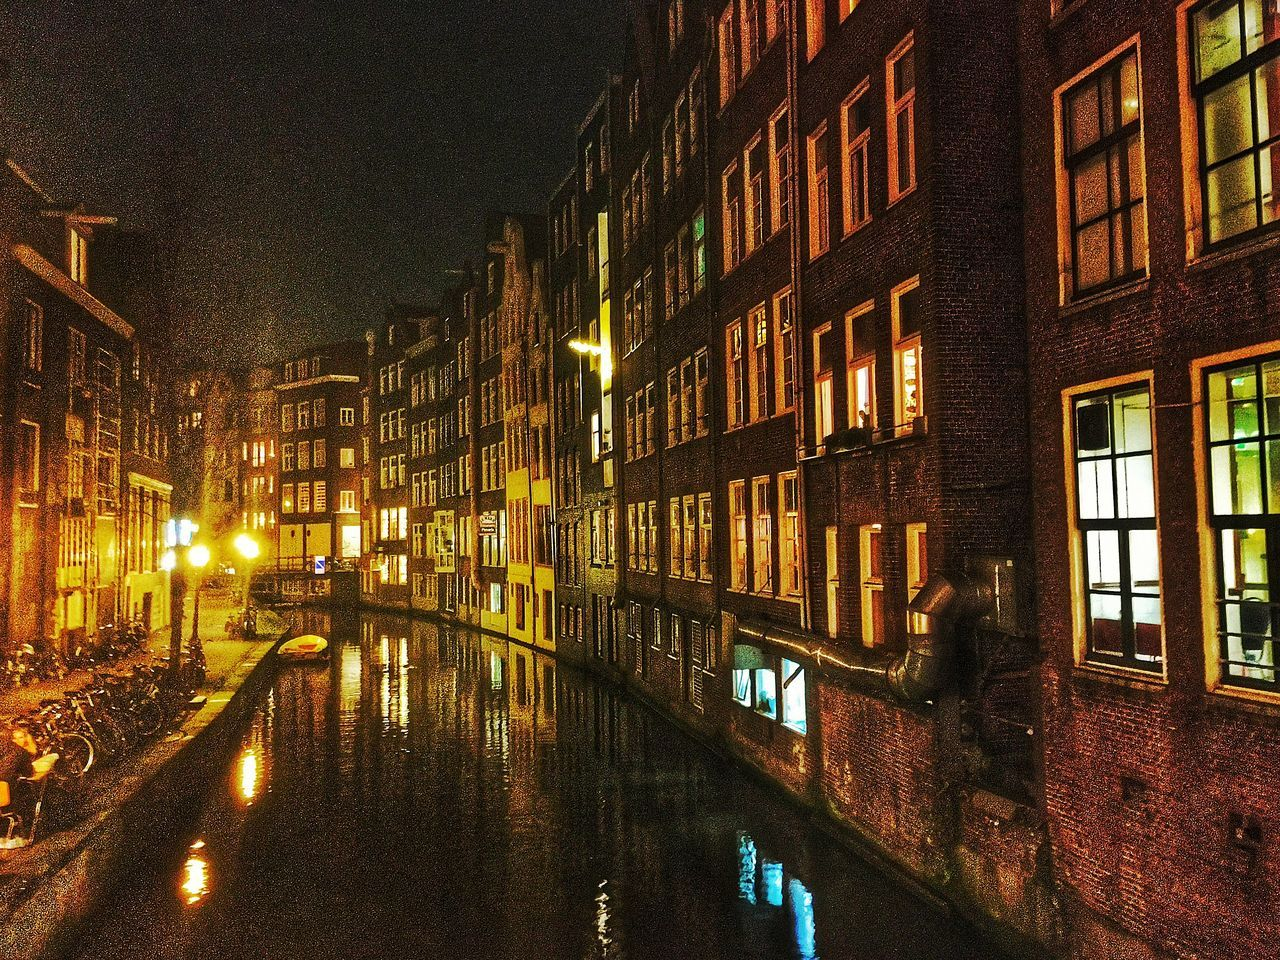 Amsterdam Amsterdamcity Architecture Beautiful Building Exterior Canal City City City Life Citylife Gracht Grachten Grachtentour Holland Iamamsterdam Illuminated Netherlands Niederlande Night Nightshot Street Light